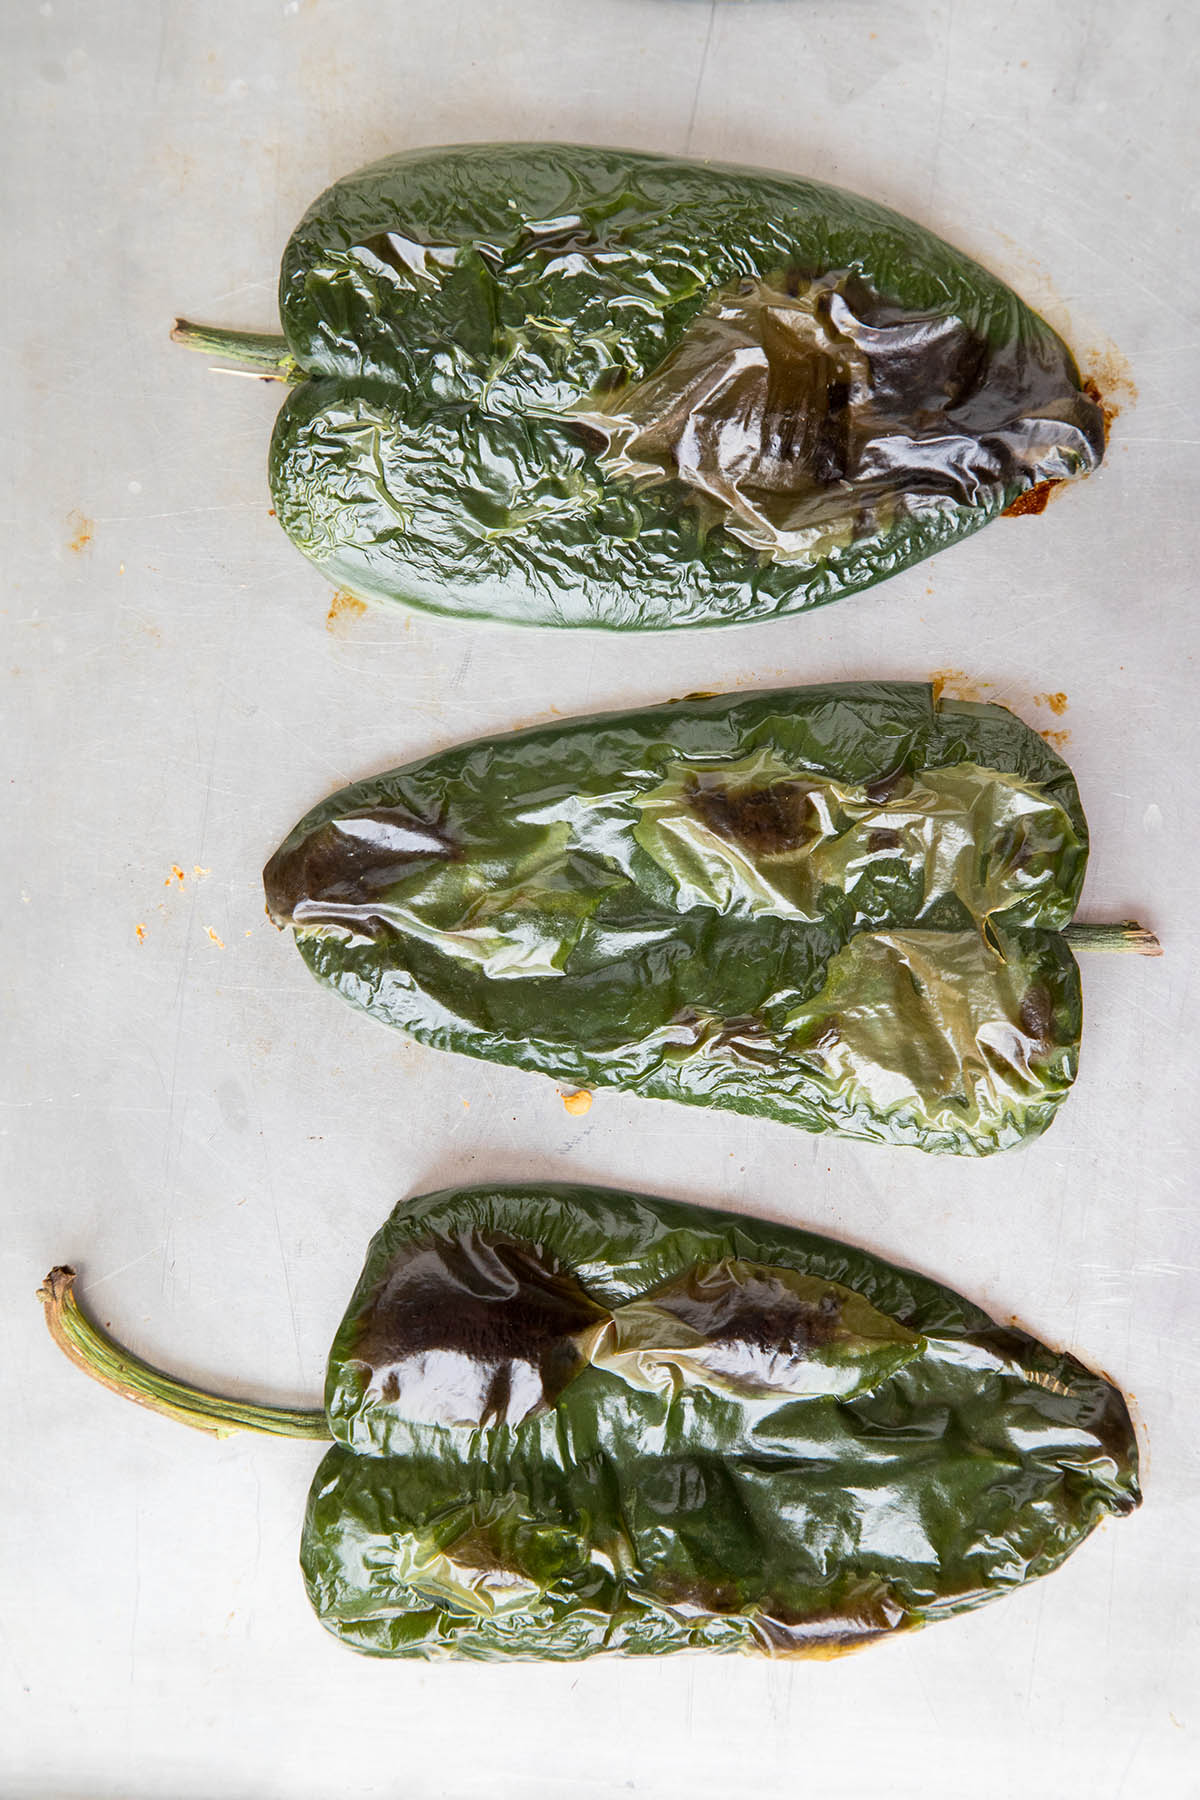 These Poblano Peppers are Roasted and Ready for Stuffing for Our Picadillo Stuffed Poblano Peppers Recipe